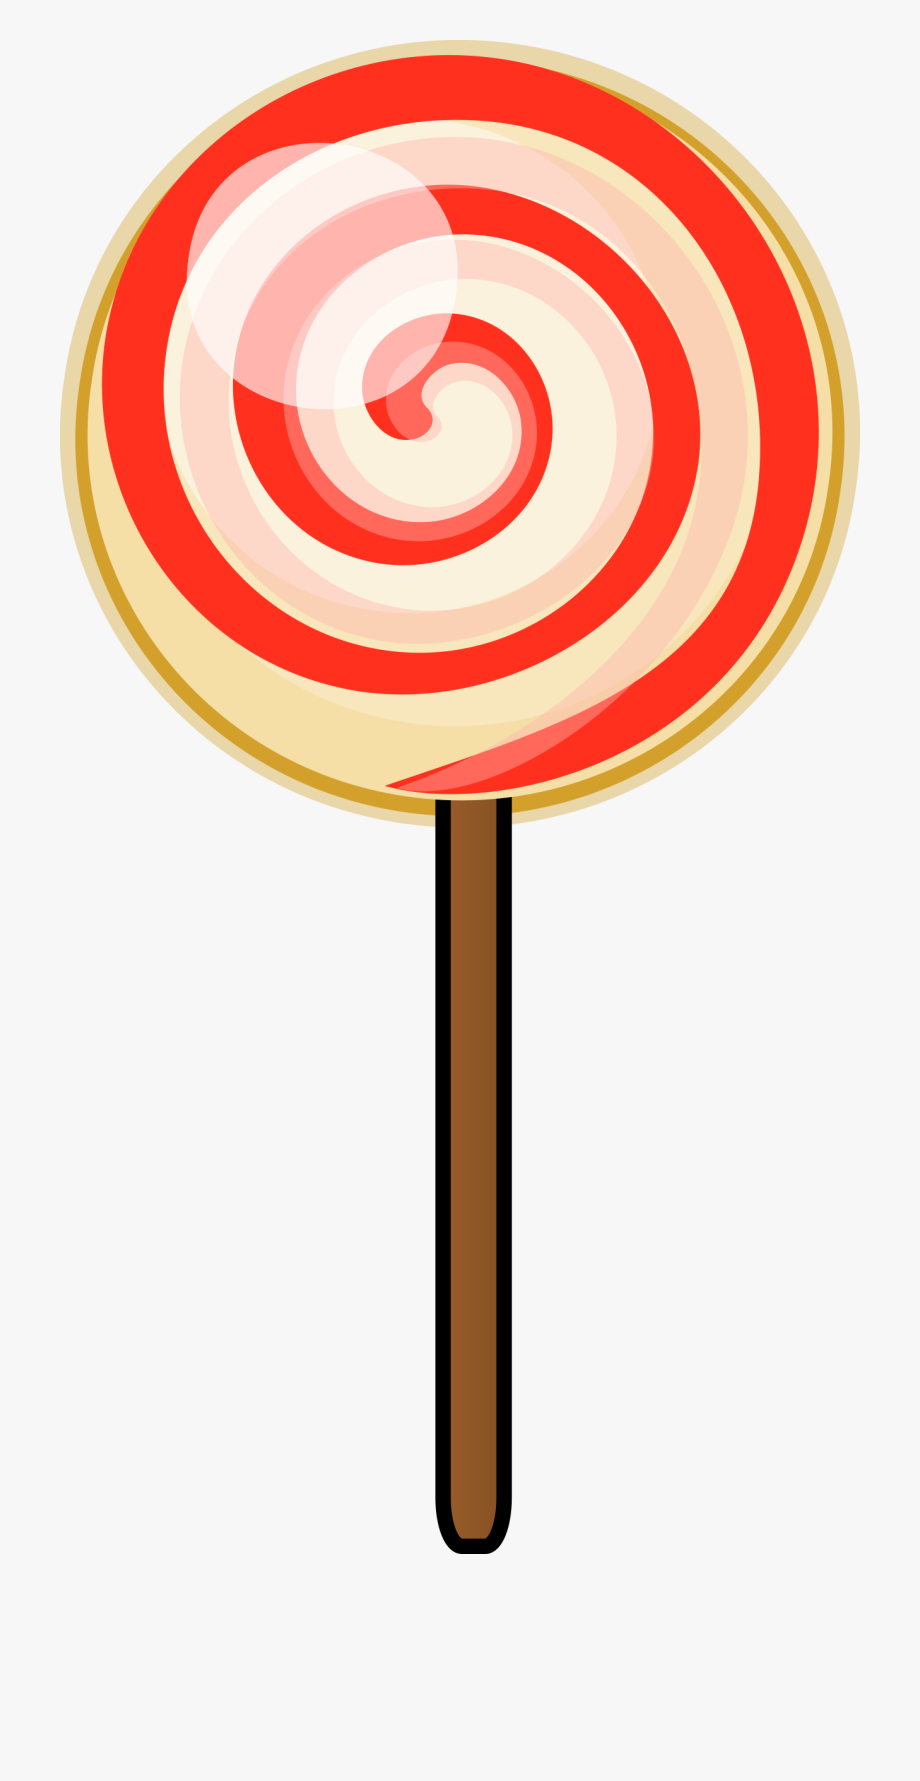 Lollipop clipart lolipop. Png free cliparts on